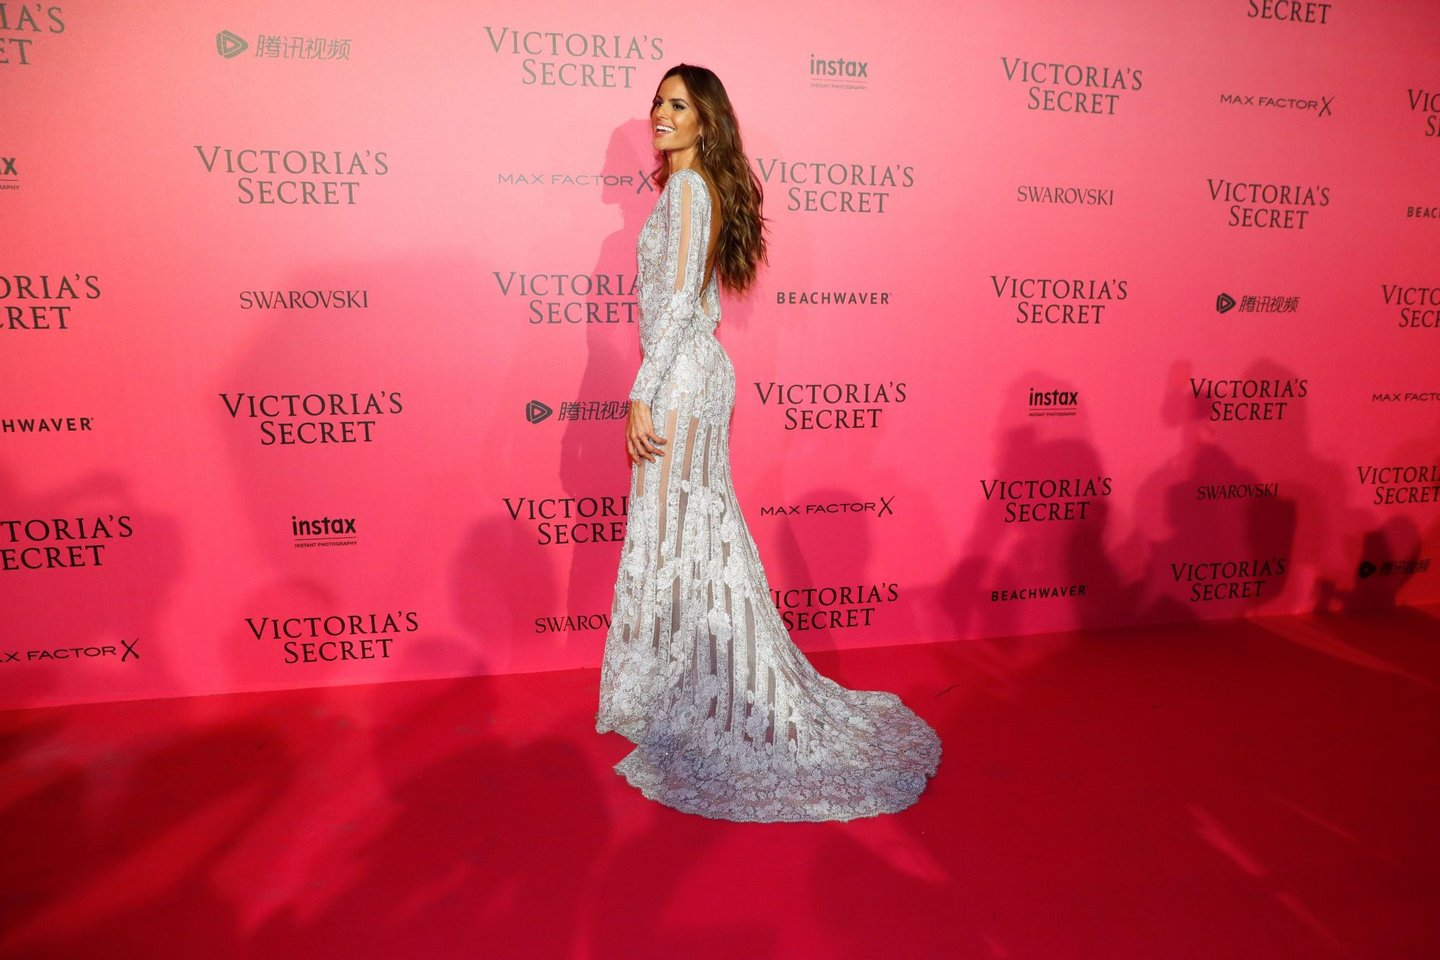 Brazilian model Izabel Goulart poses after taking part in the 2016 Victoria's Secret Fashion Show at the Grand Palais in Paris on November 30, 2016. / AFP / Patrick KOVARIK / RESTRICTED TO EDITORIAL USE (Photo credit should read PATRICK KOVARIK/AFP/Getty Images)